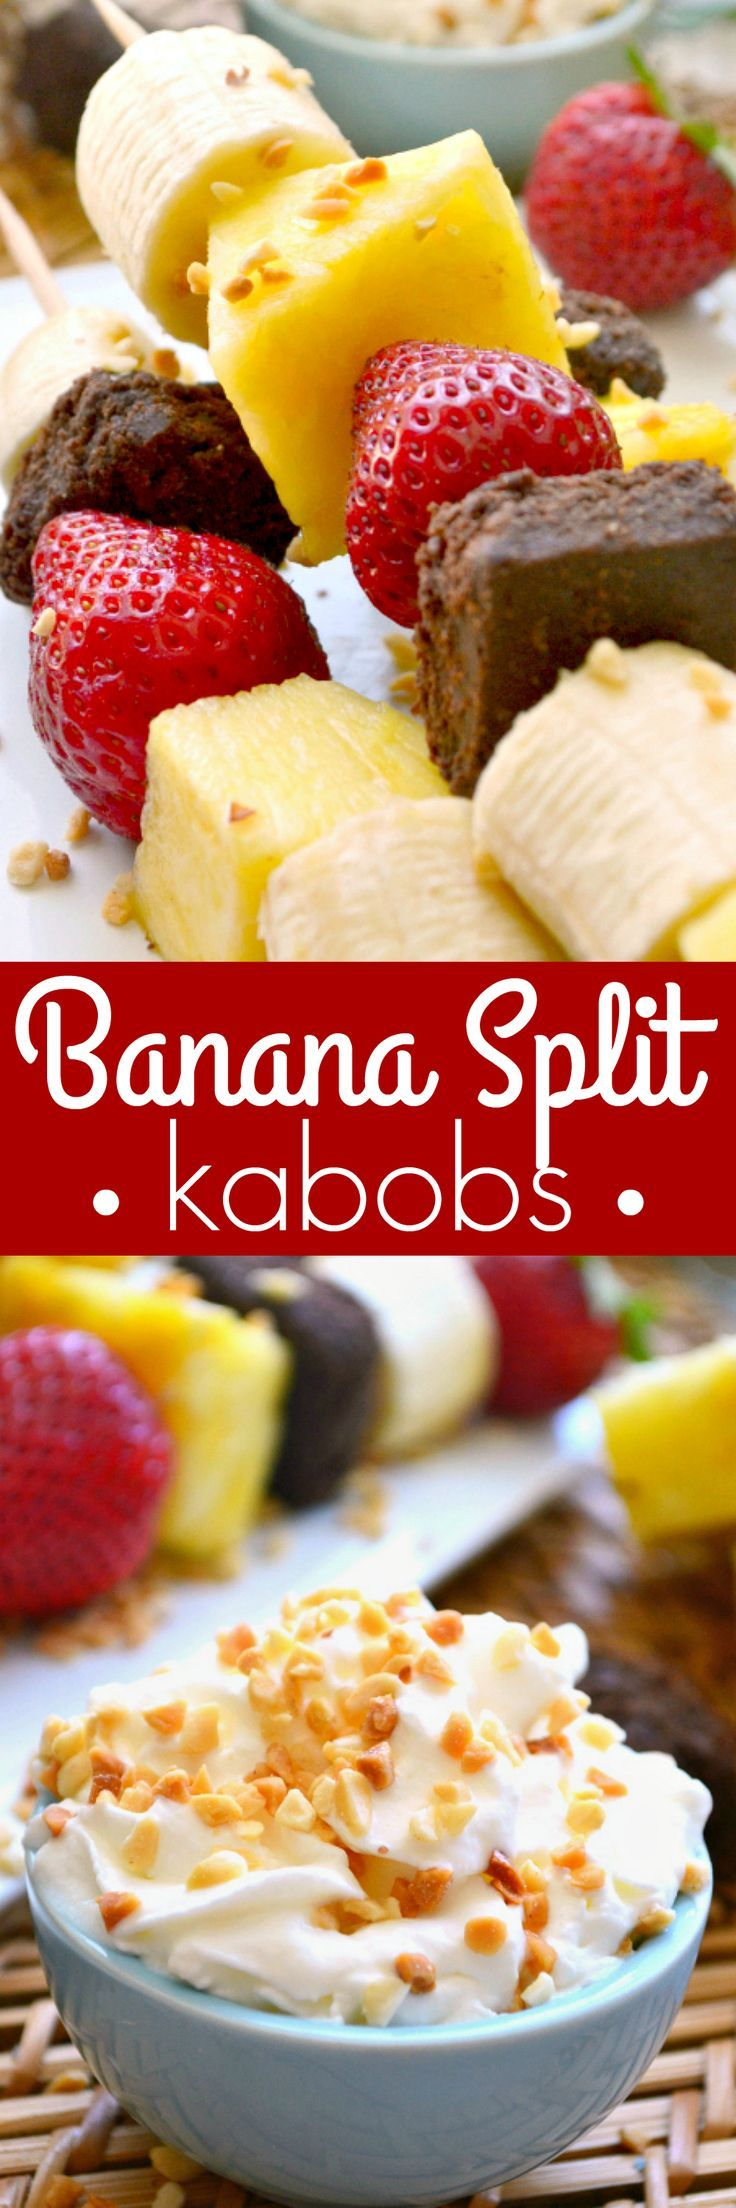 Banana Split Kabobs - what a fun summer dessert or snack idea for kids!!